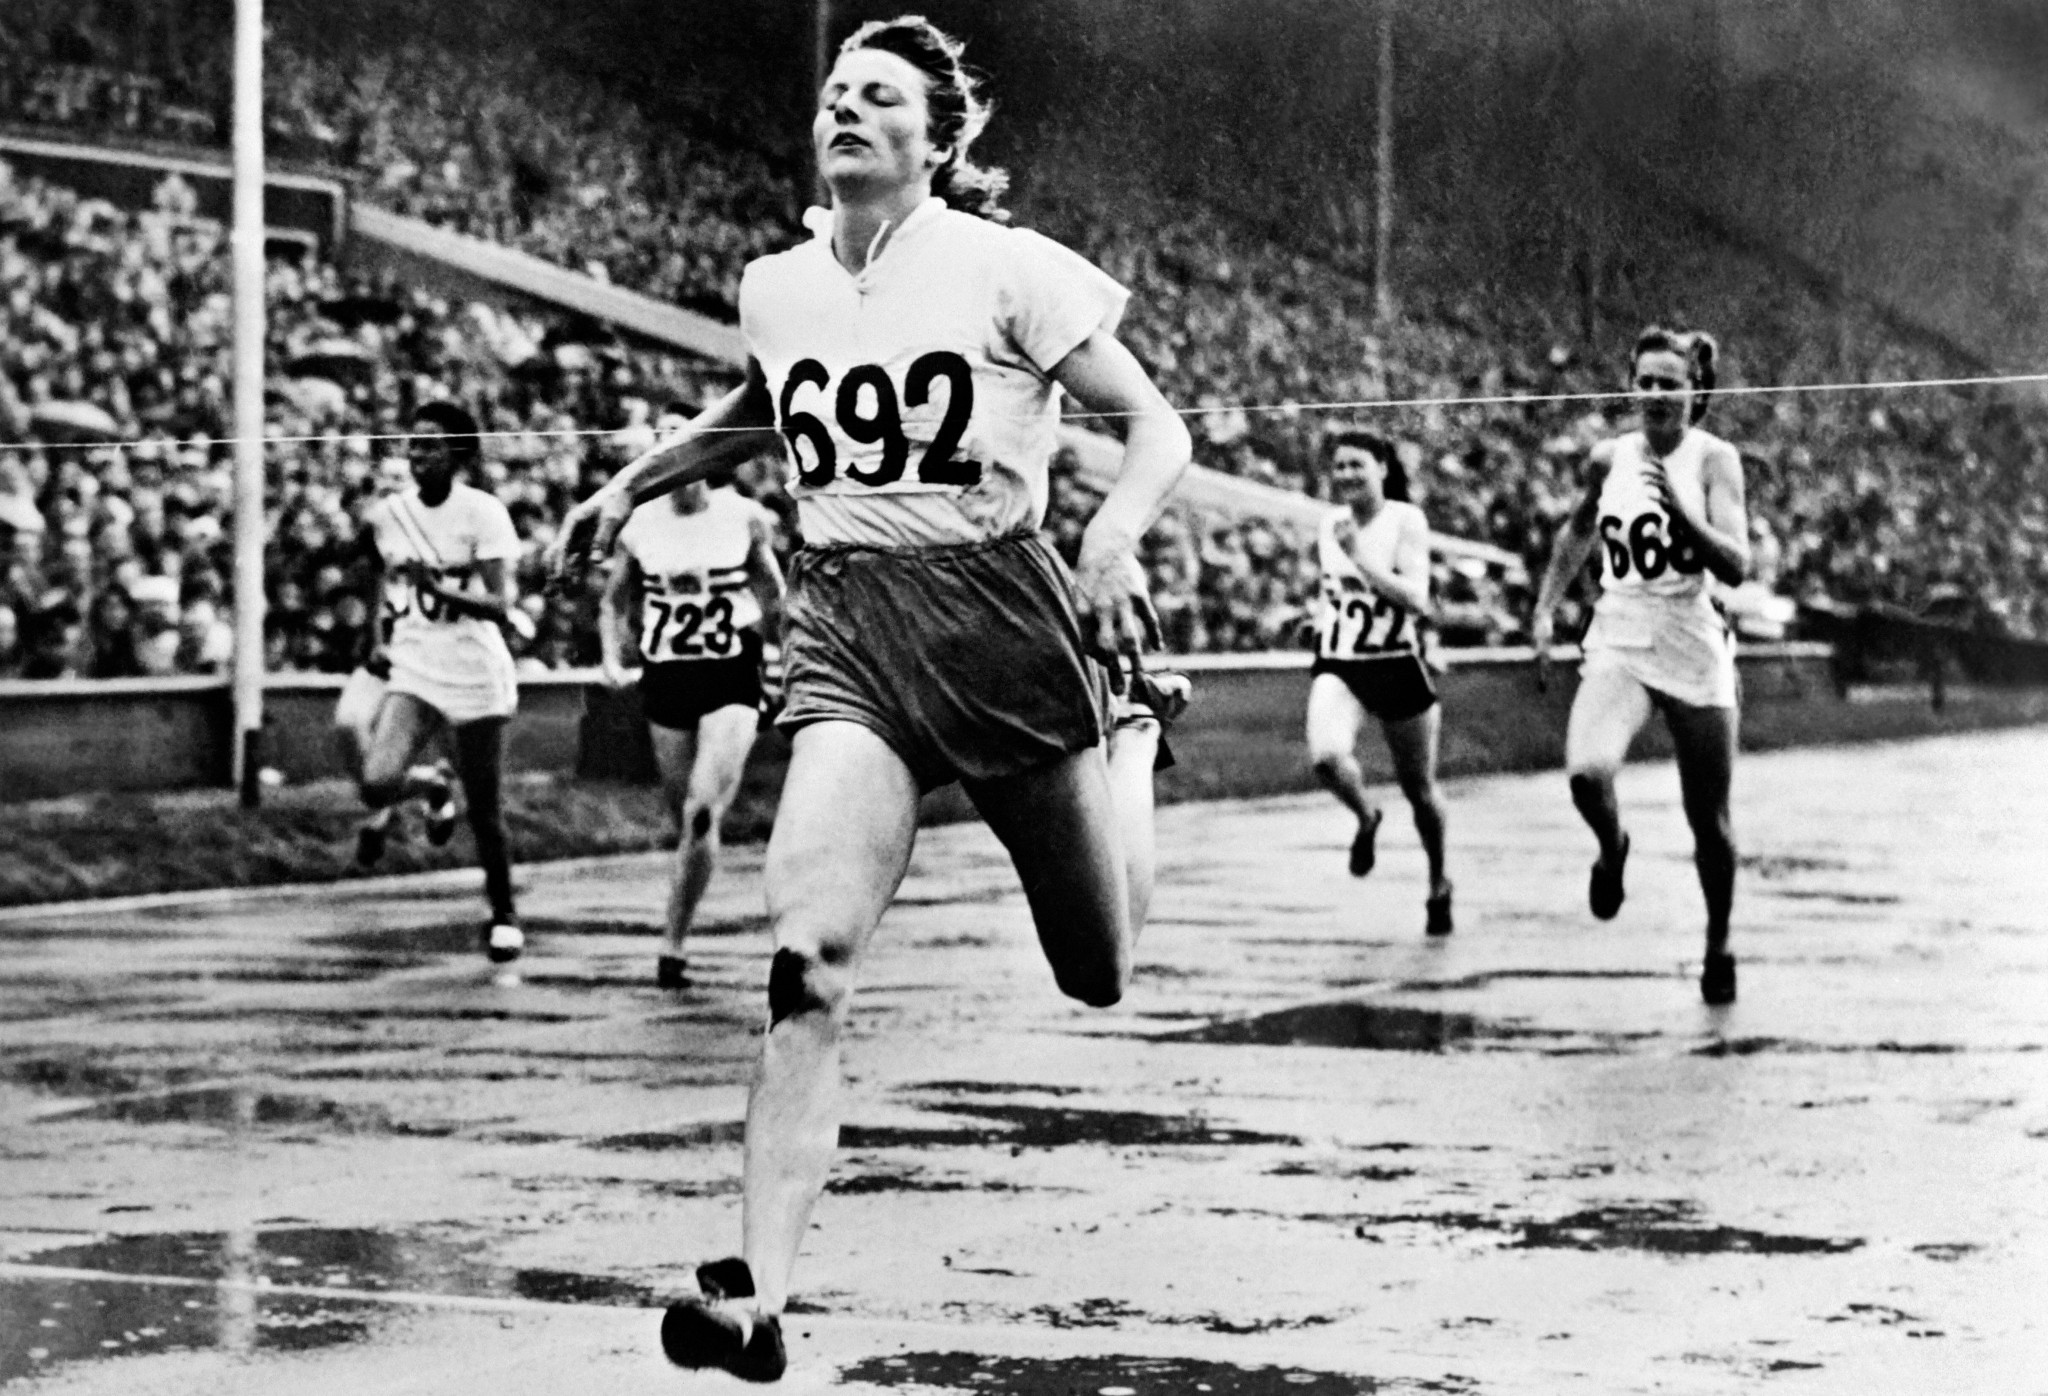 Decima Norman could have rivalled Dutch legend Fanny Blankers-Koen if fate had dealt her a fairer hand ©Getty Images